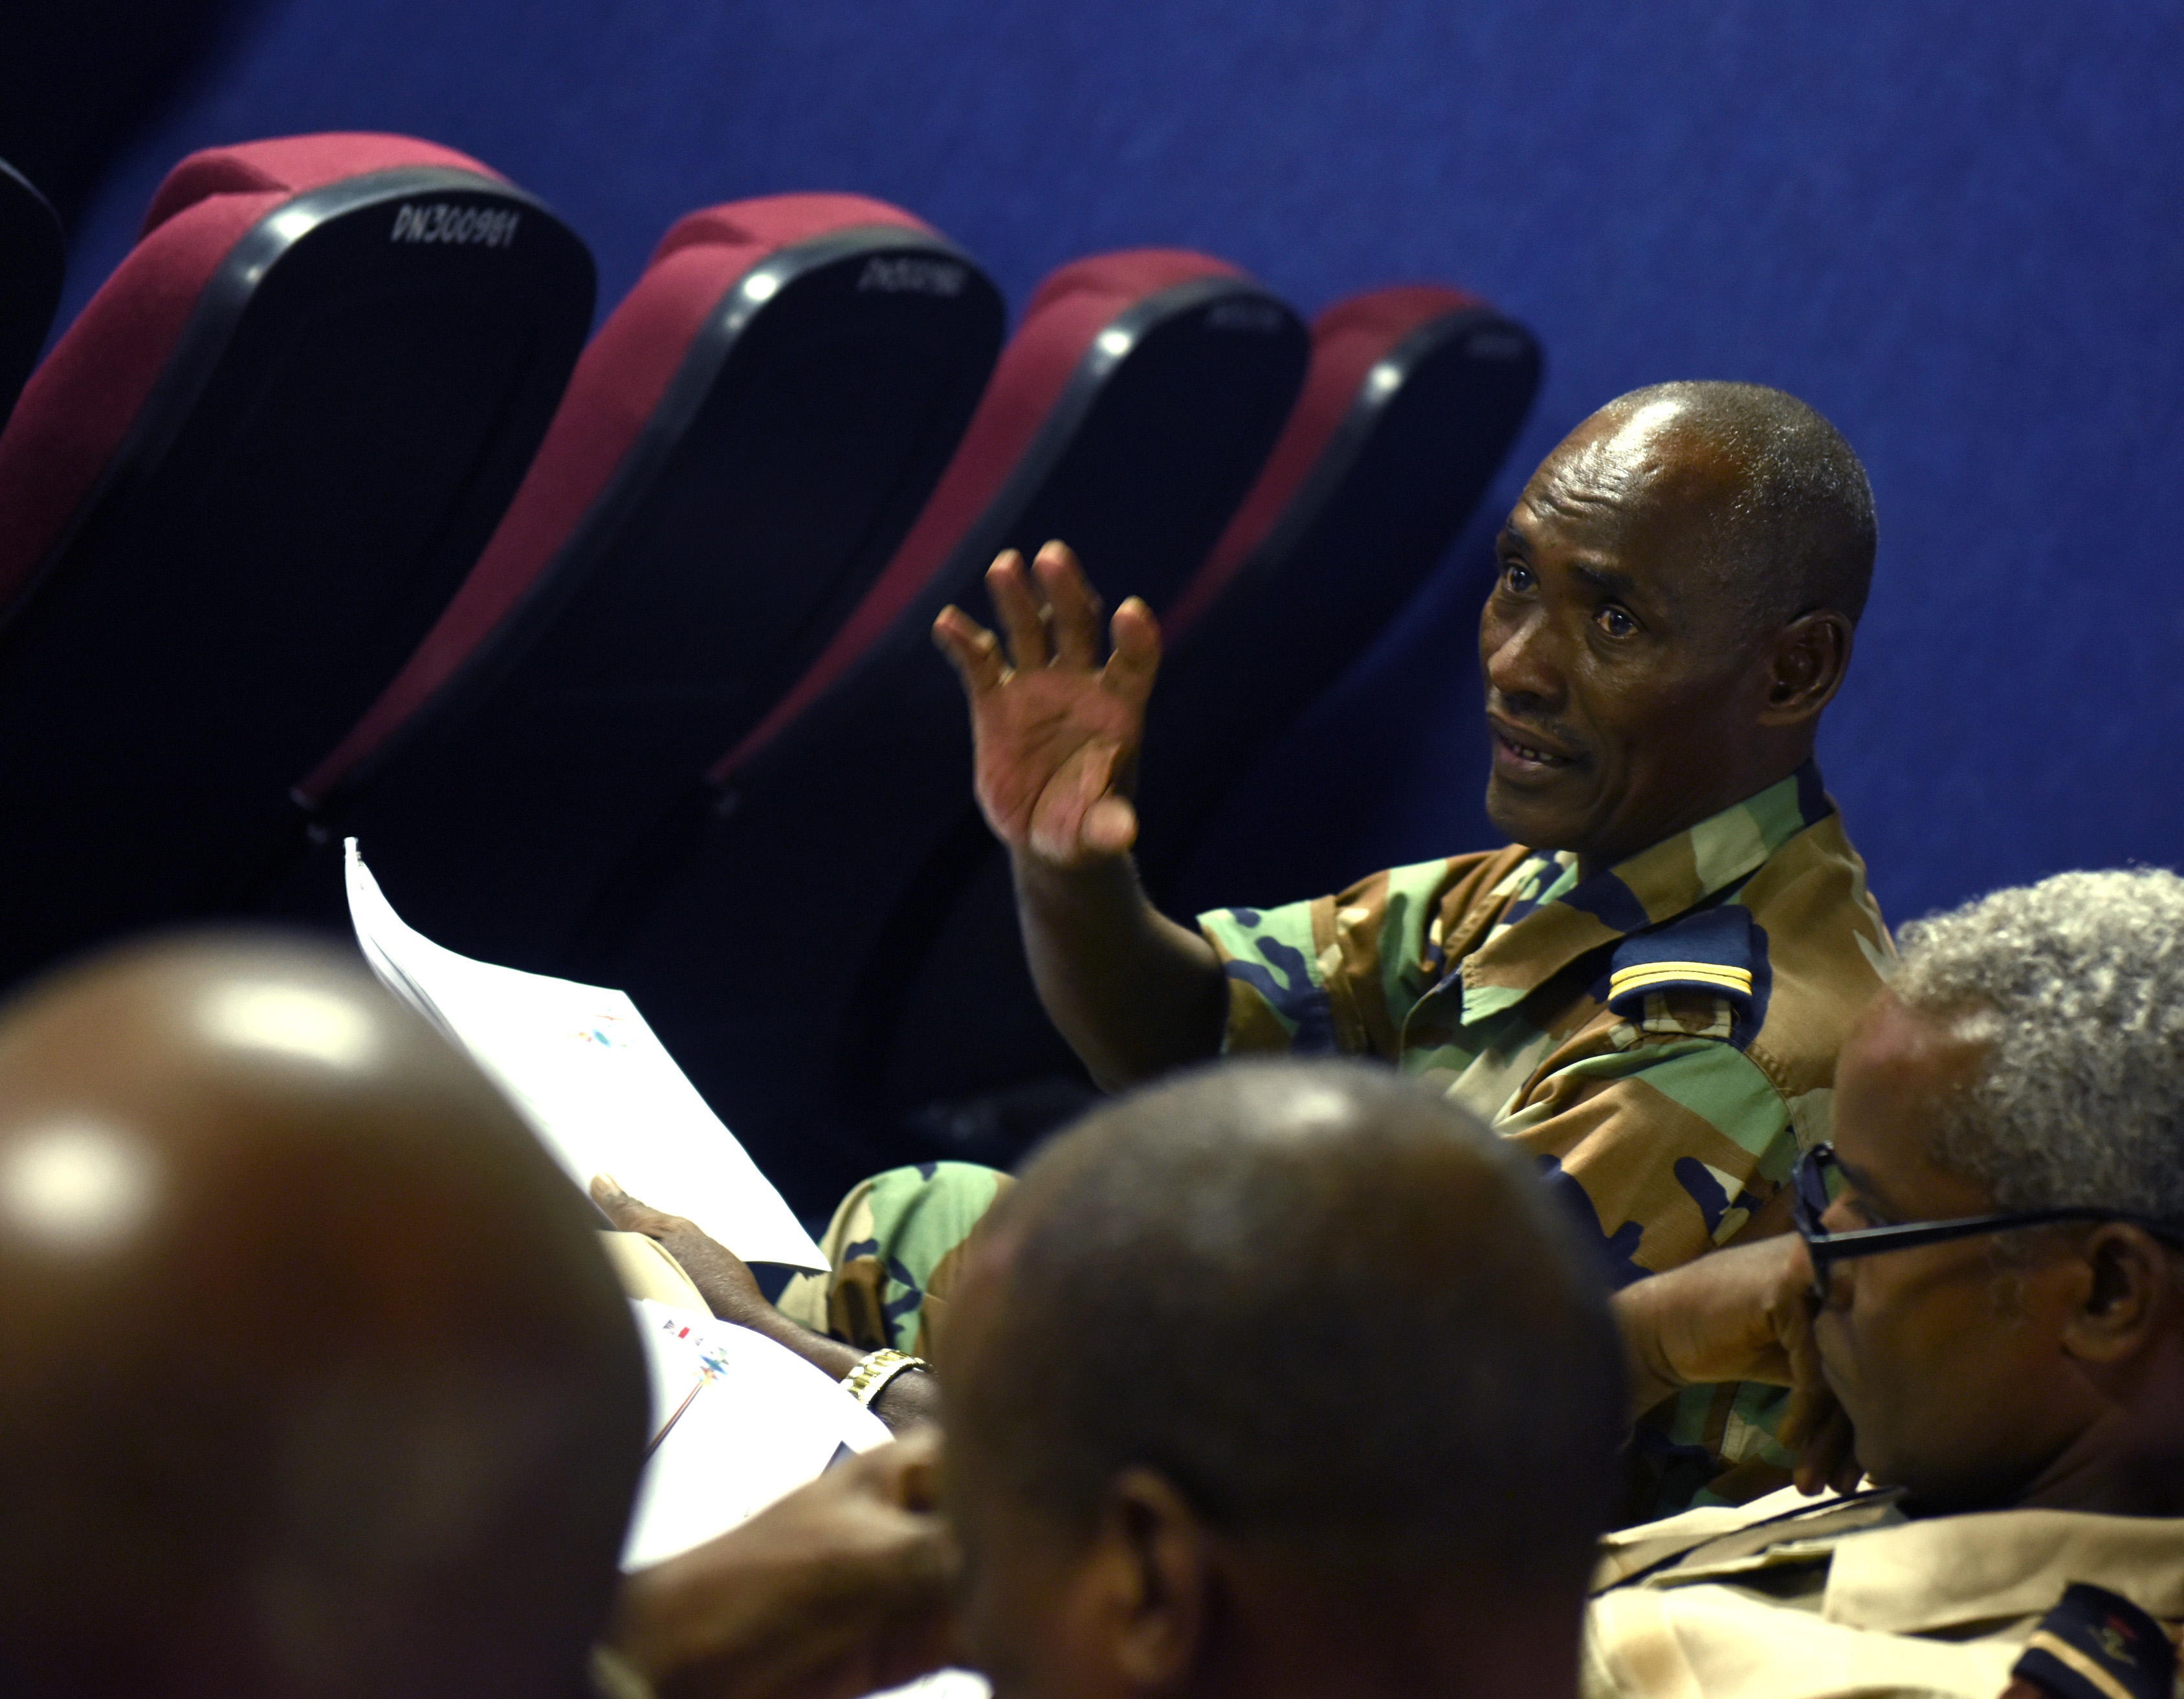 Sgt. Maj. Ibrahim Yabeh, Djibouti Armed Forces senior enlisted leader, speaks with other SELs Dec. 29, 2015, at Camp Lemonnier, Djibouti. Visits like this are intended to develop U.S. and other countries' military leaders by facilitating professional growth and networking. (U.S. Air Force photo by Staff Sgt. Kate Thornton)